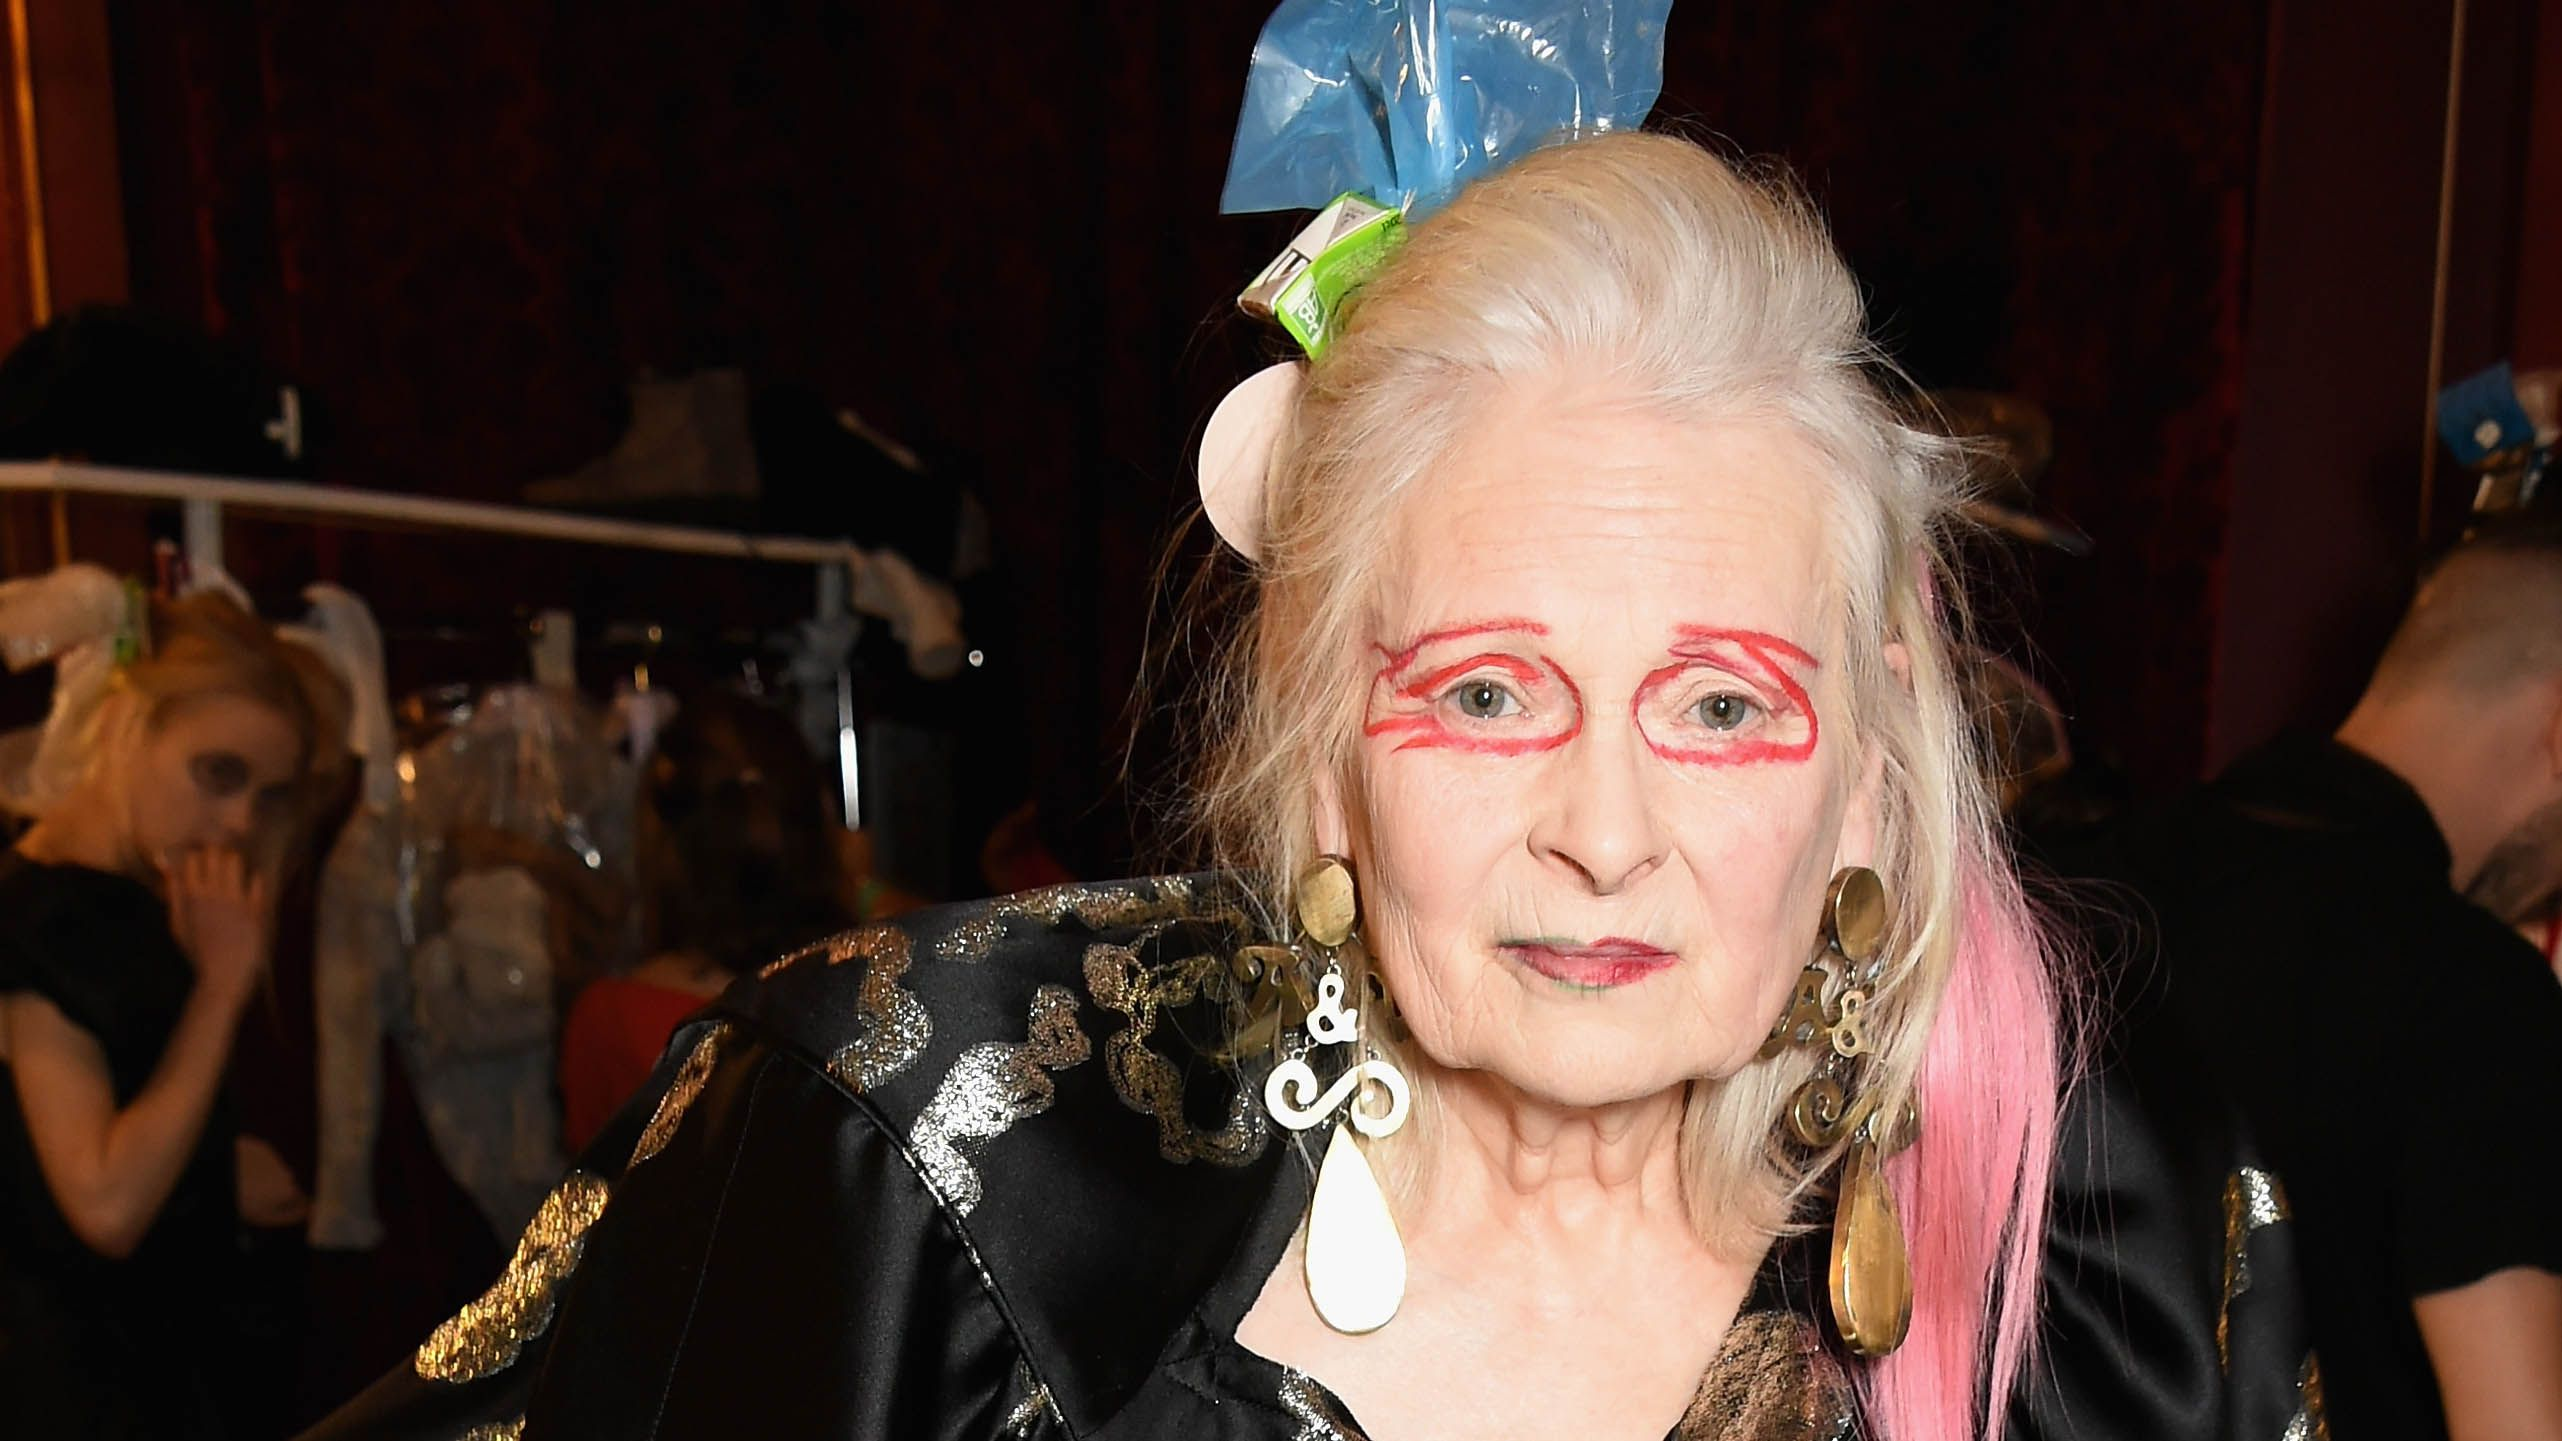 Vivienne Westwood becomes a model at 75